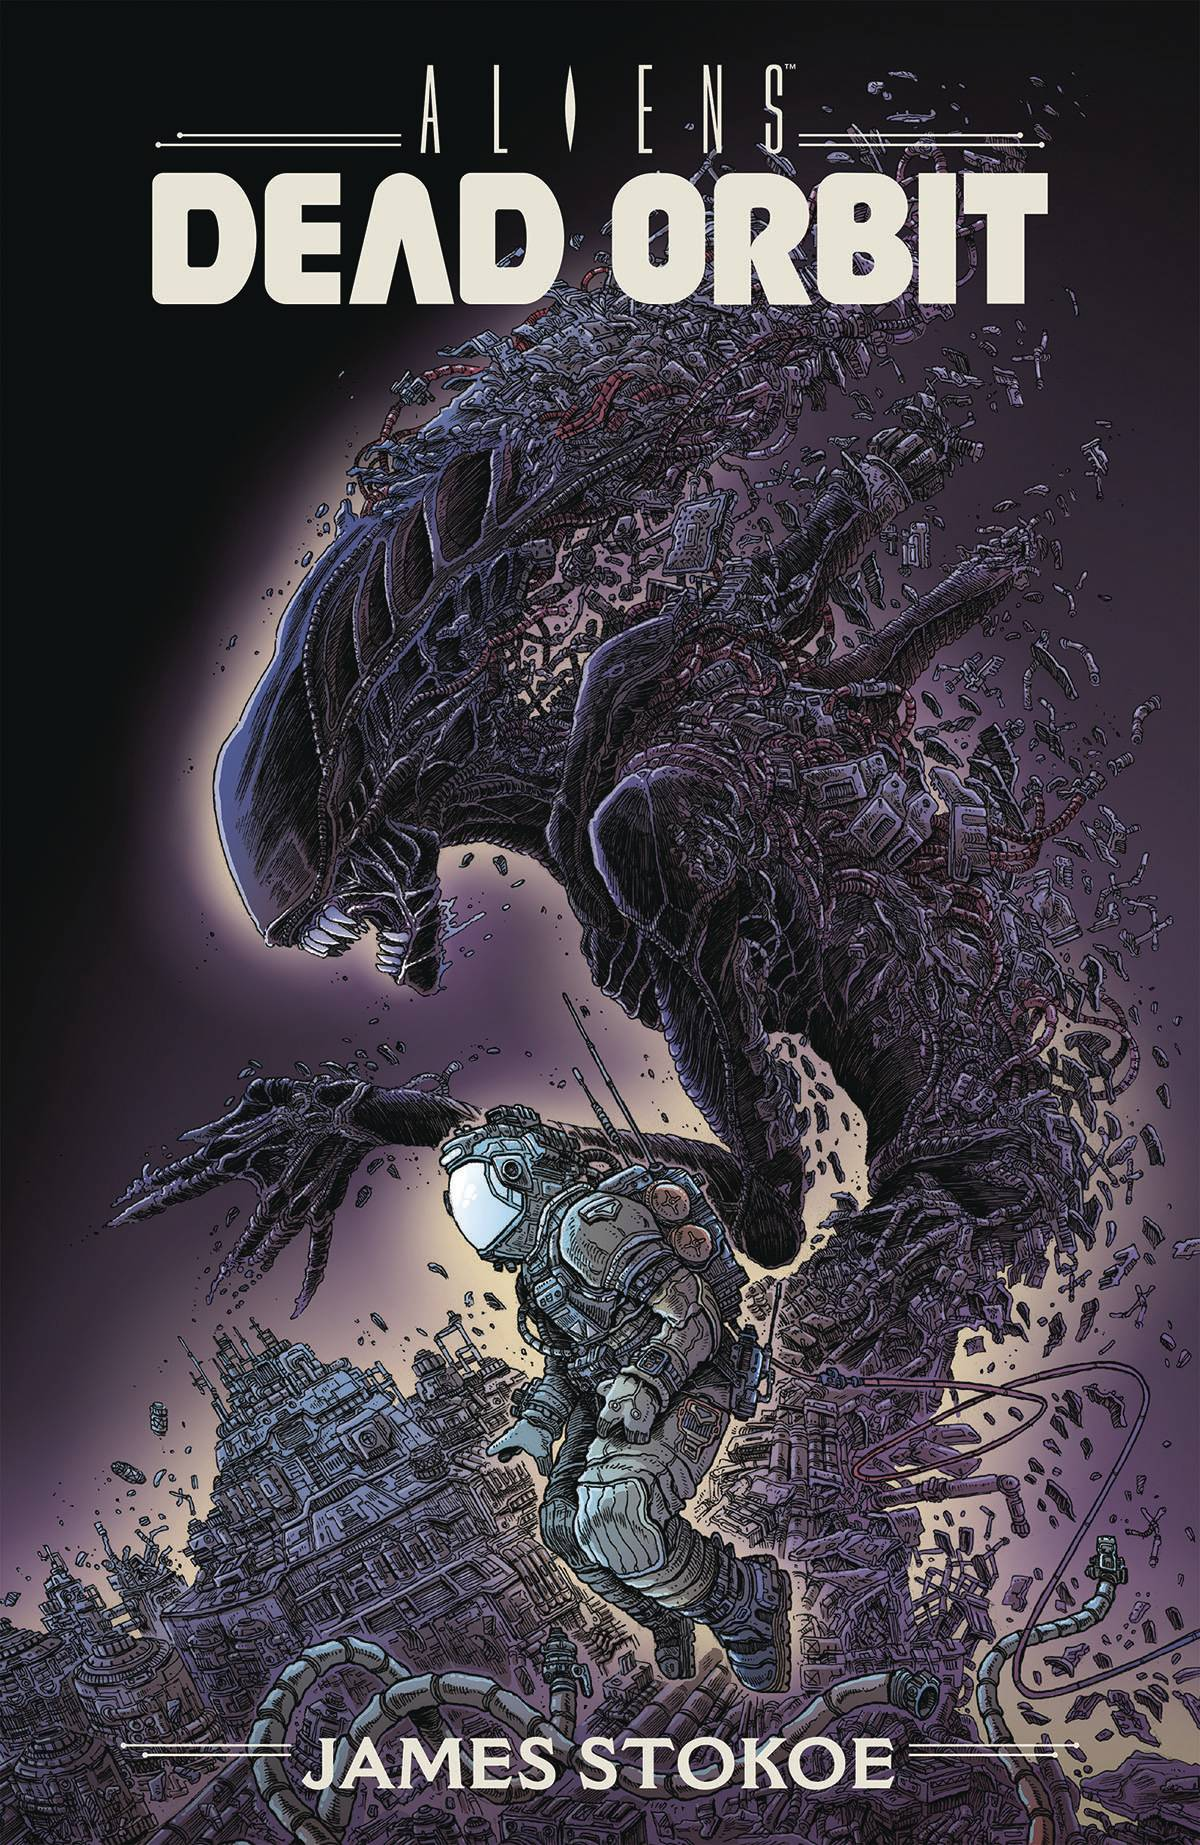 ALIENS DEAD ORBIT TP (JUL170125)